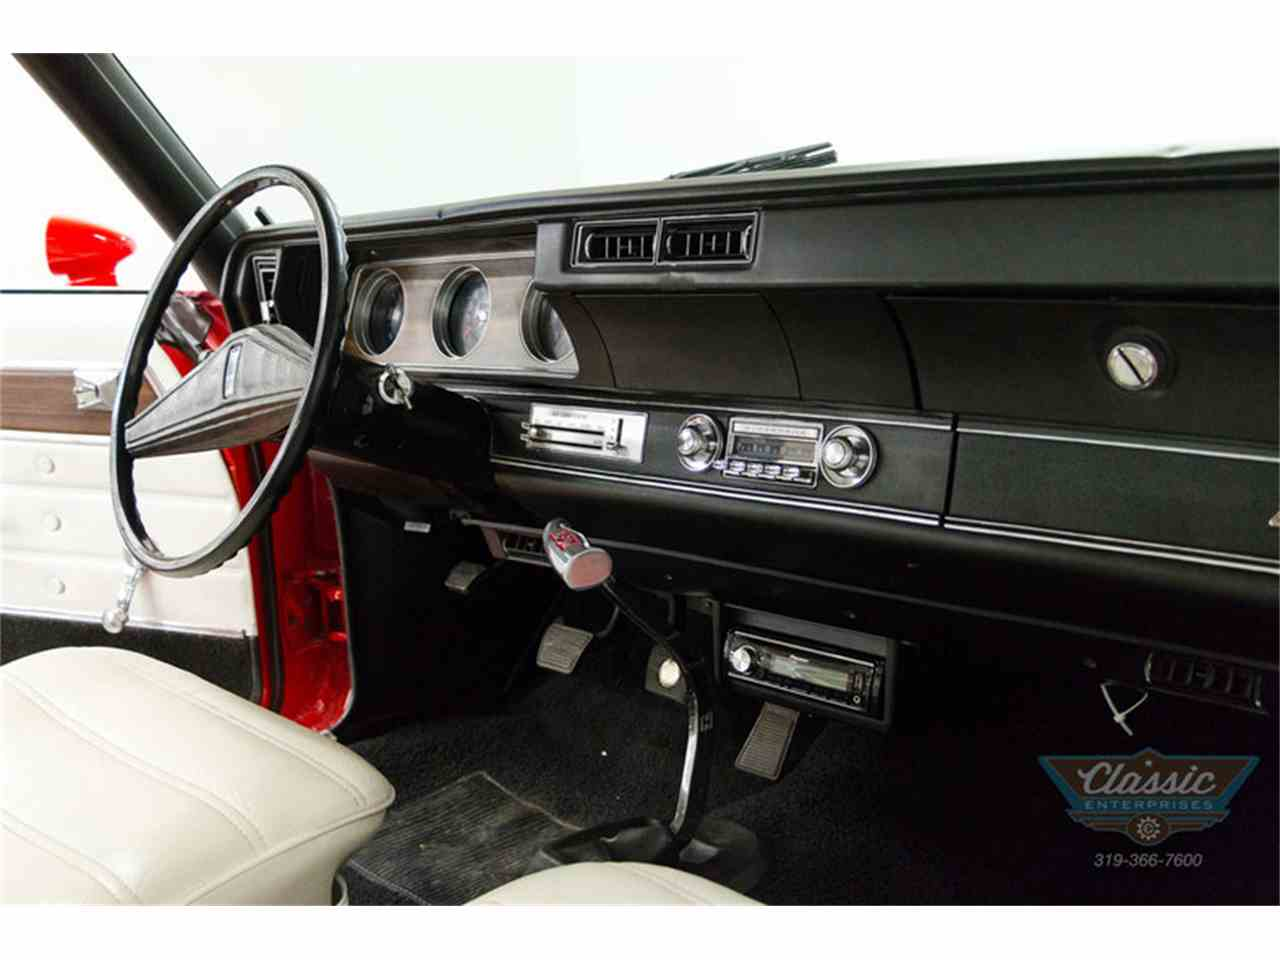 Large Picture of 1972 Oldsmobile Cutlass located in Iowa Offered by Classic Enterprises - HIAM